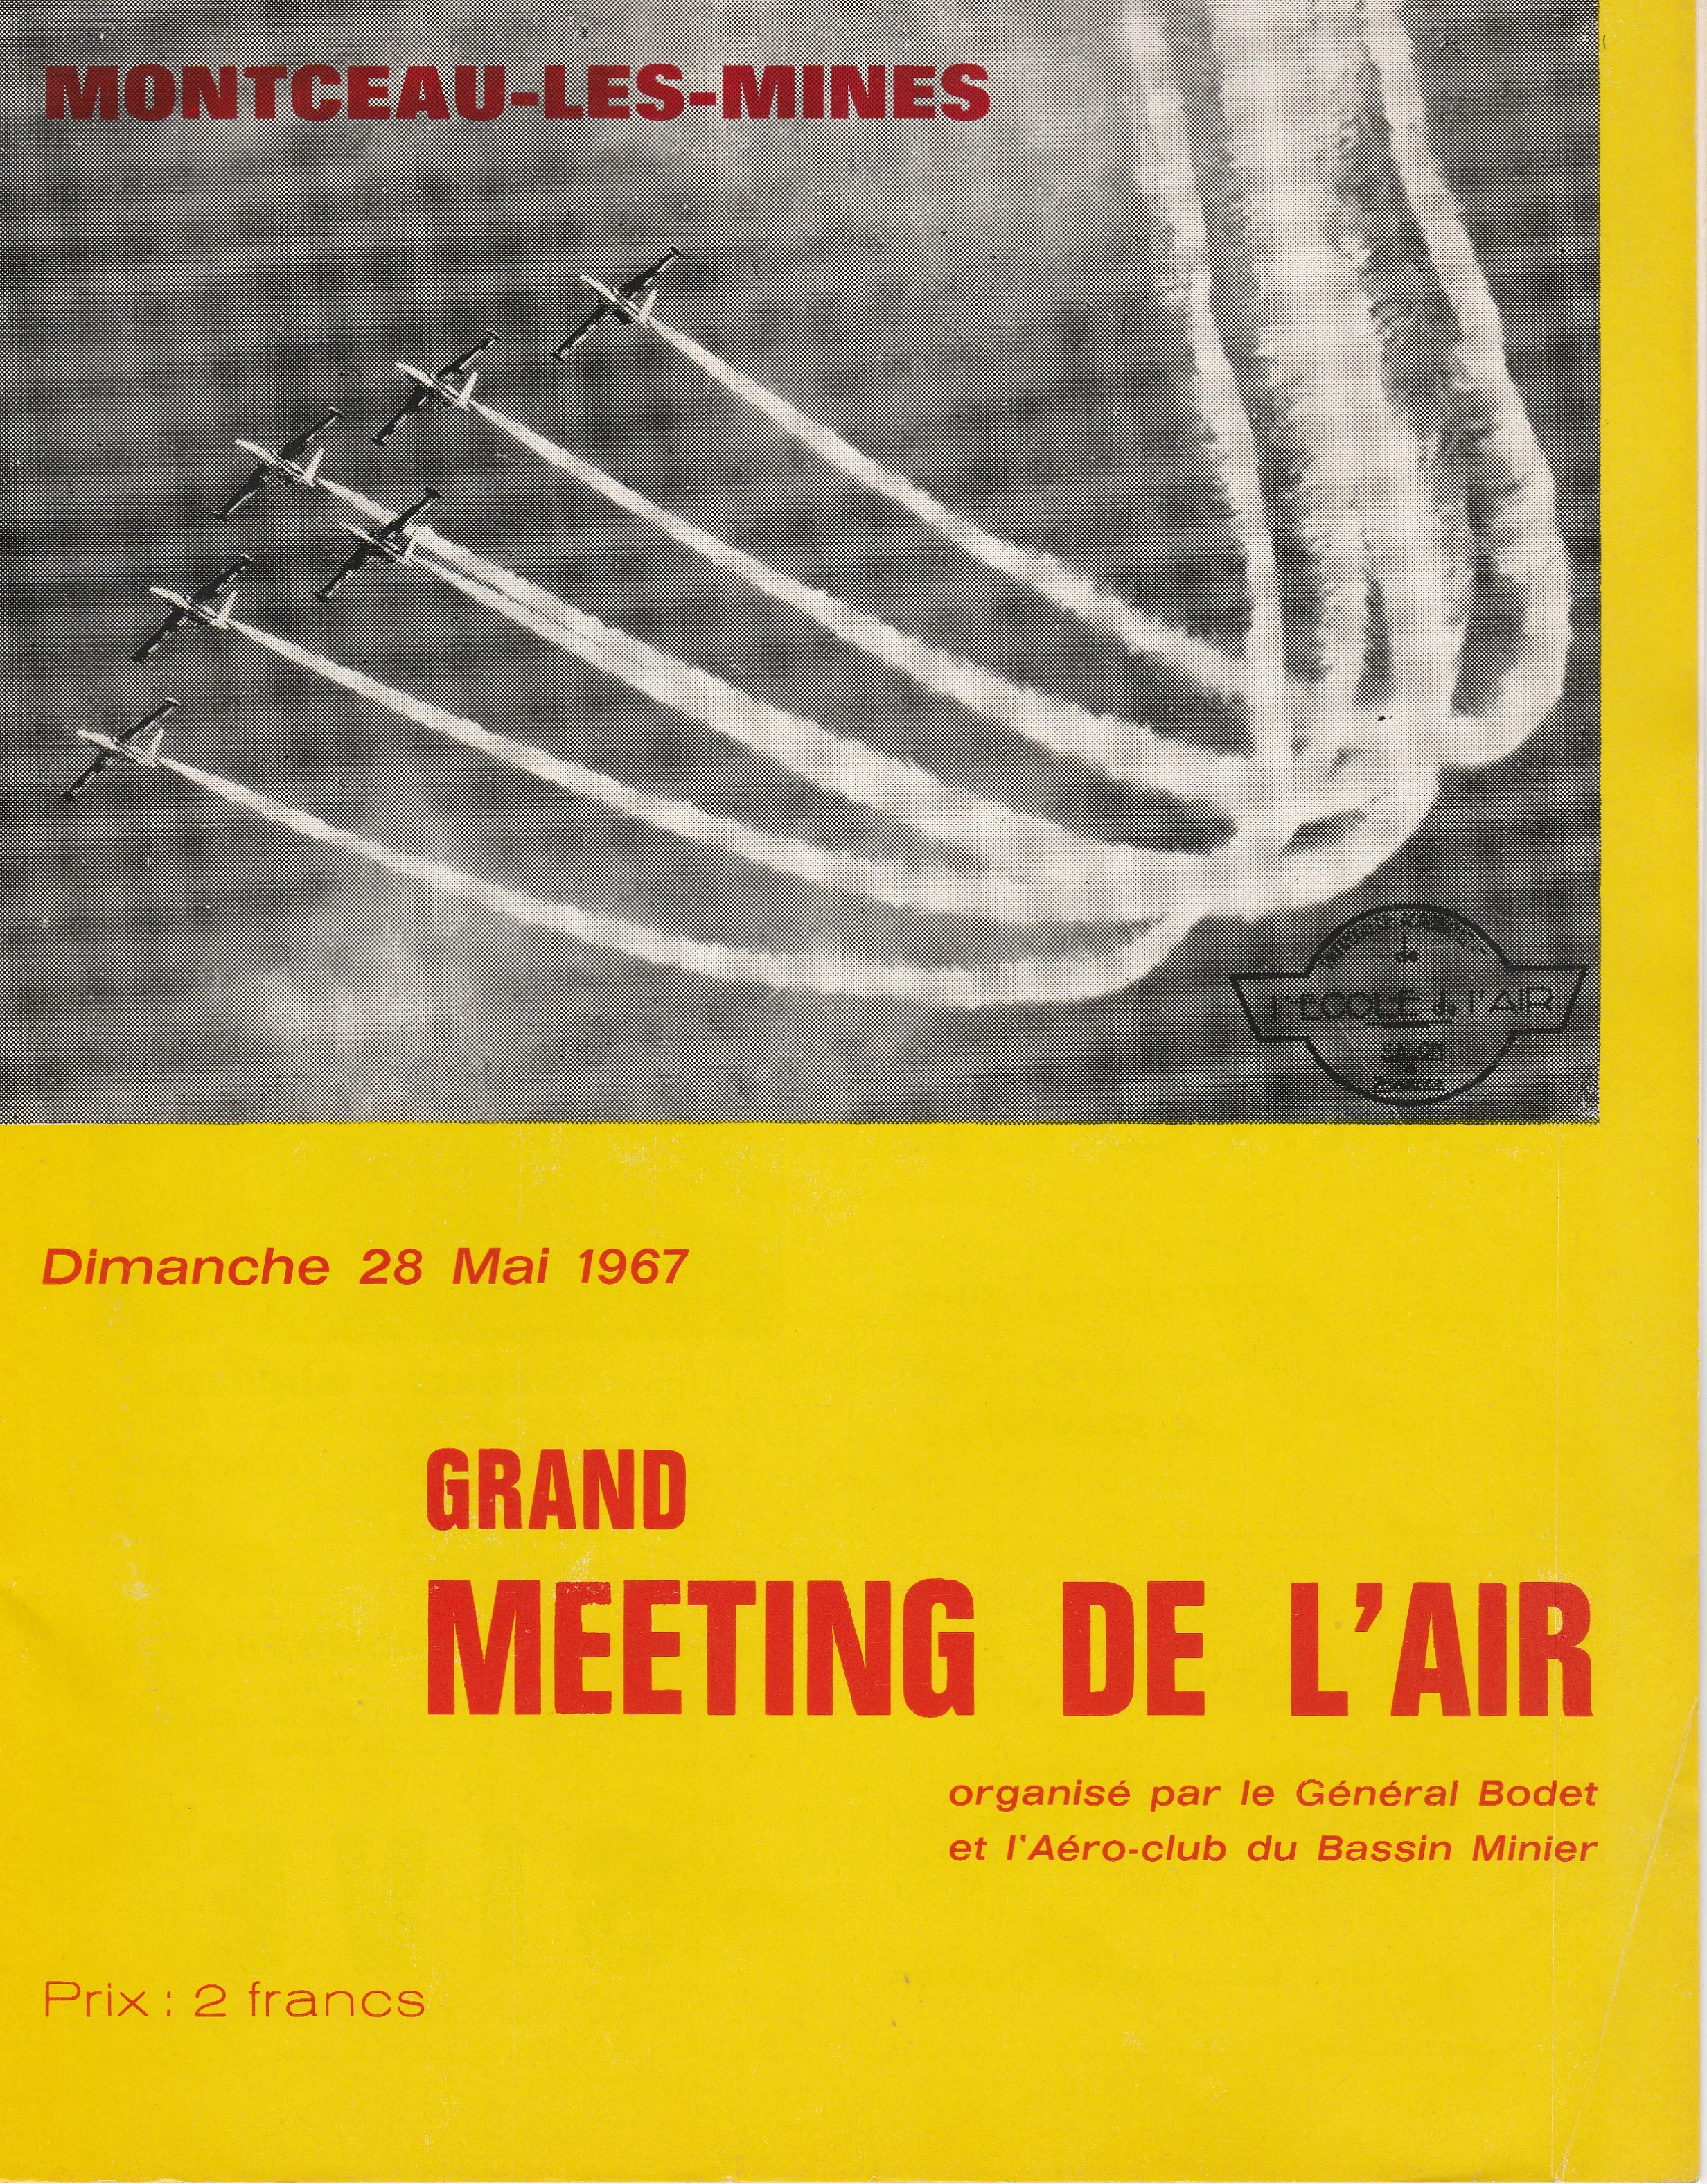 Affiche meeting 28 05 1967 (2)